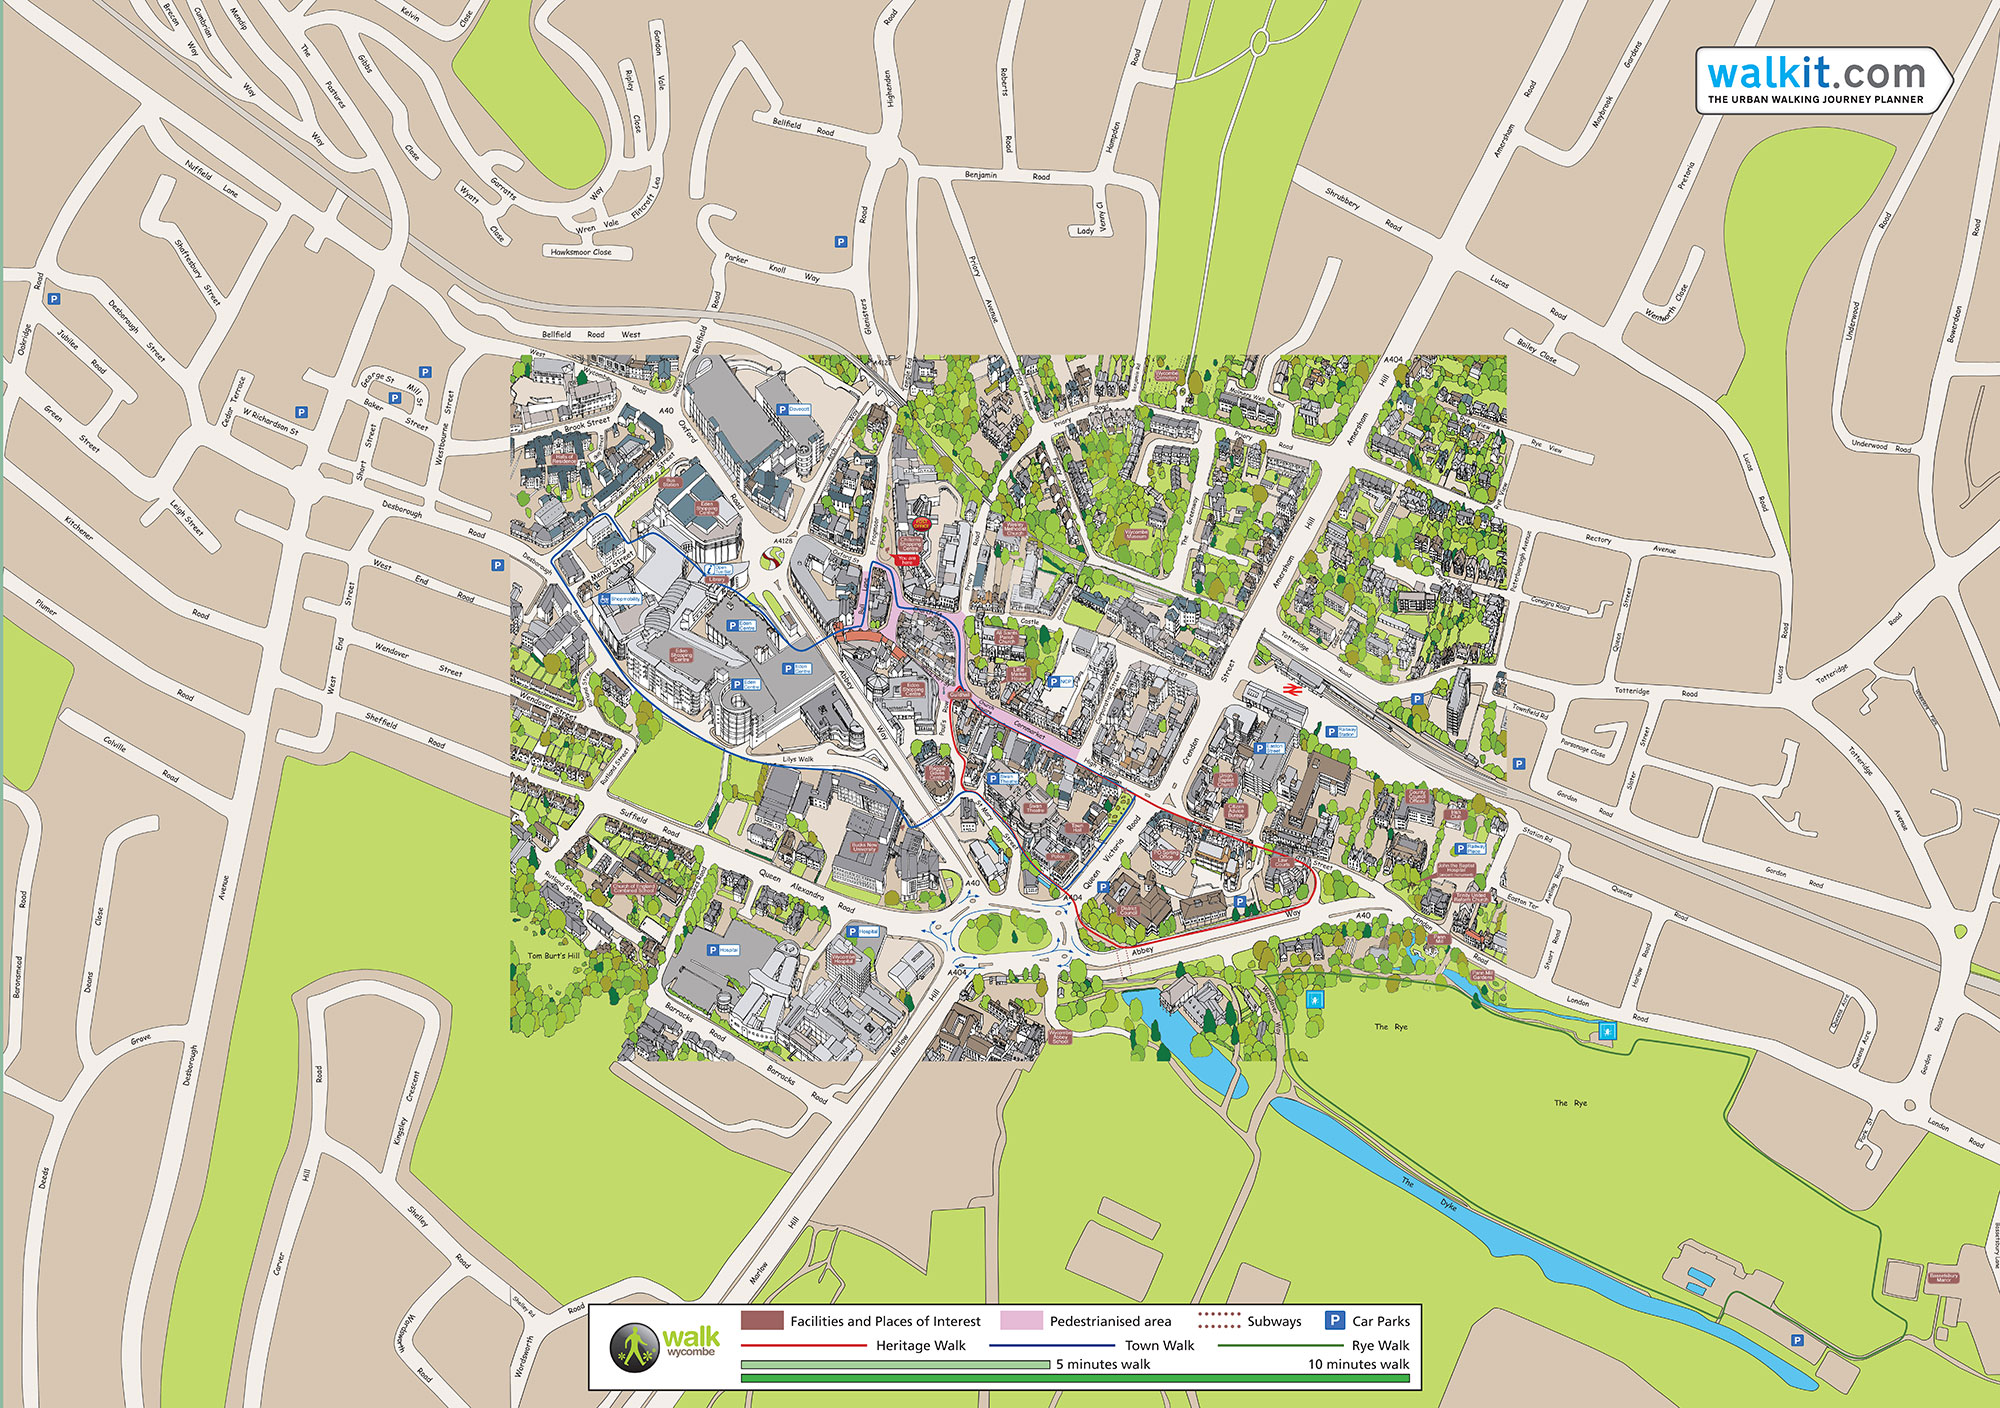 High Wycombe Silvermaze Mapping Specialist - Walking map planner